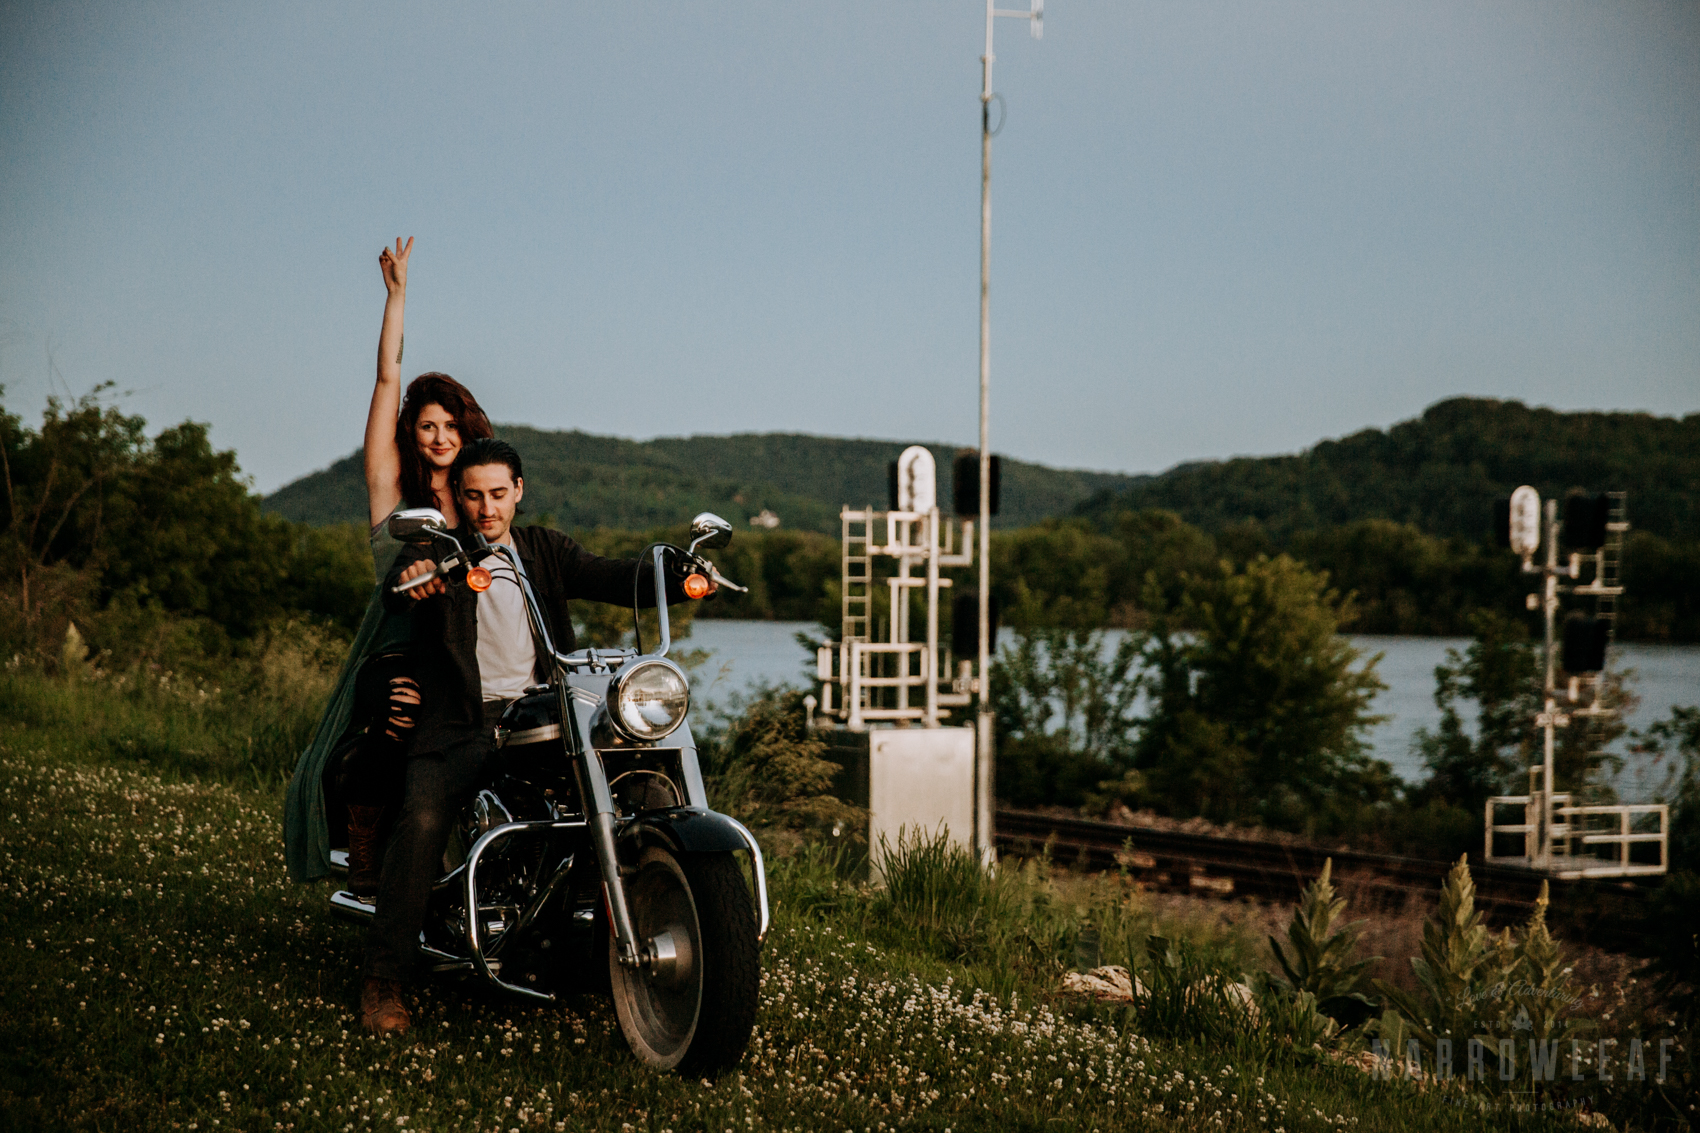 Trempealeau-wi-moody-engagement-motorcycle-NarrowLeaf-love-and-adventure-Photography-14.jpg